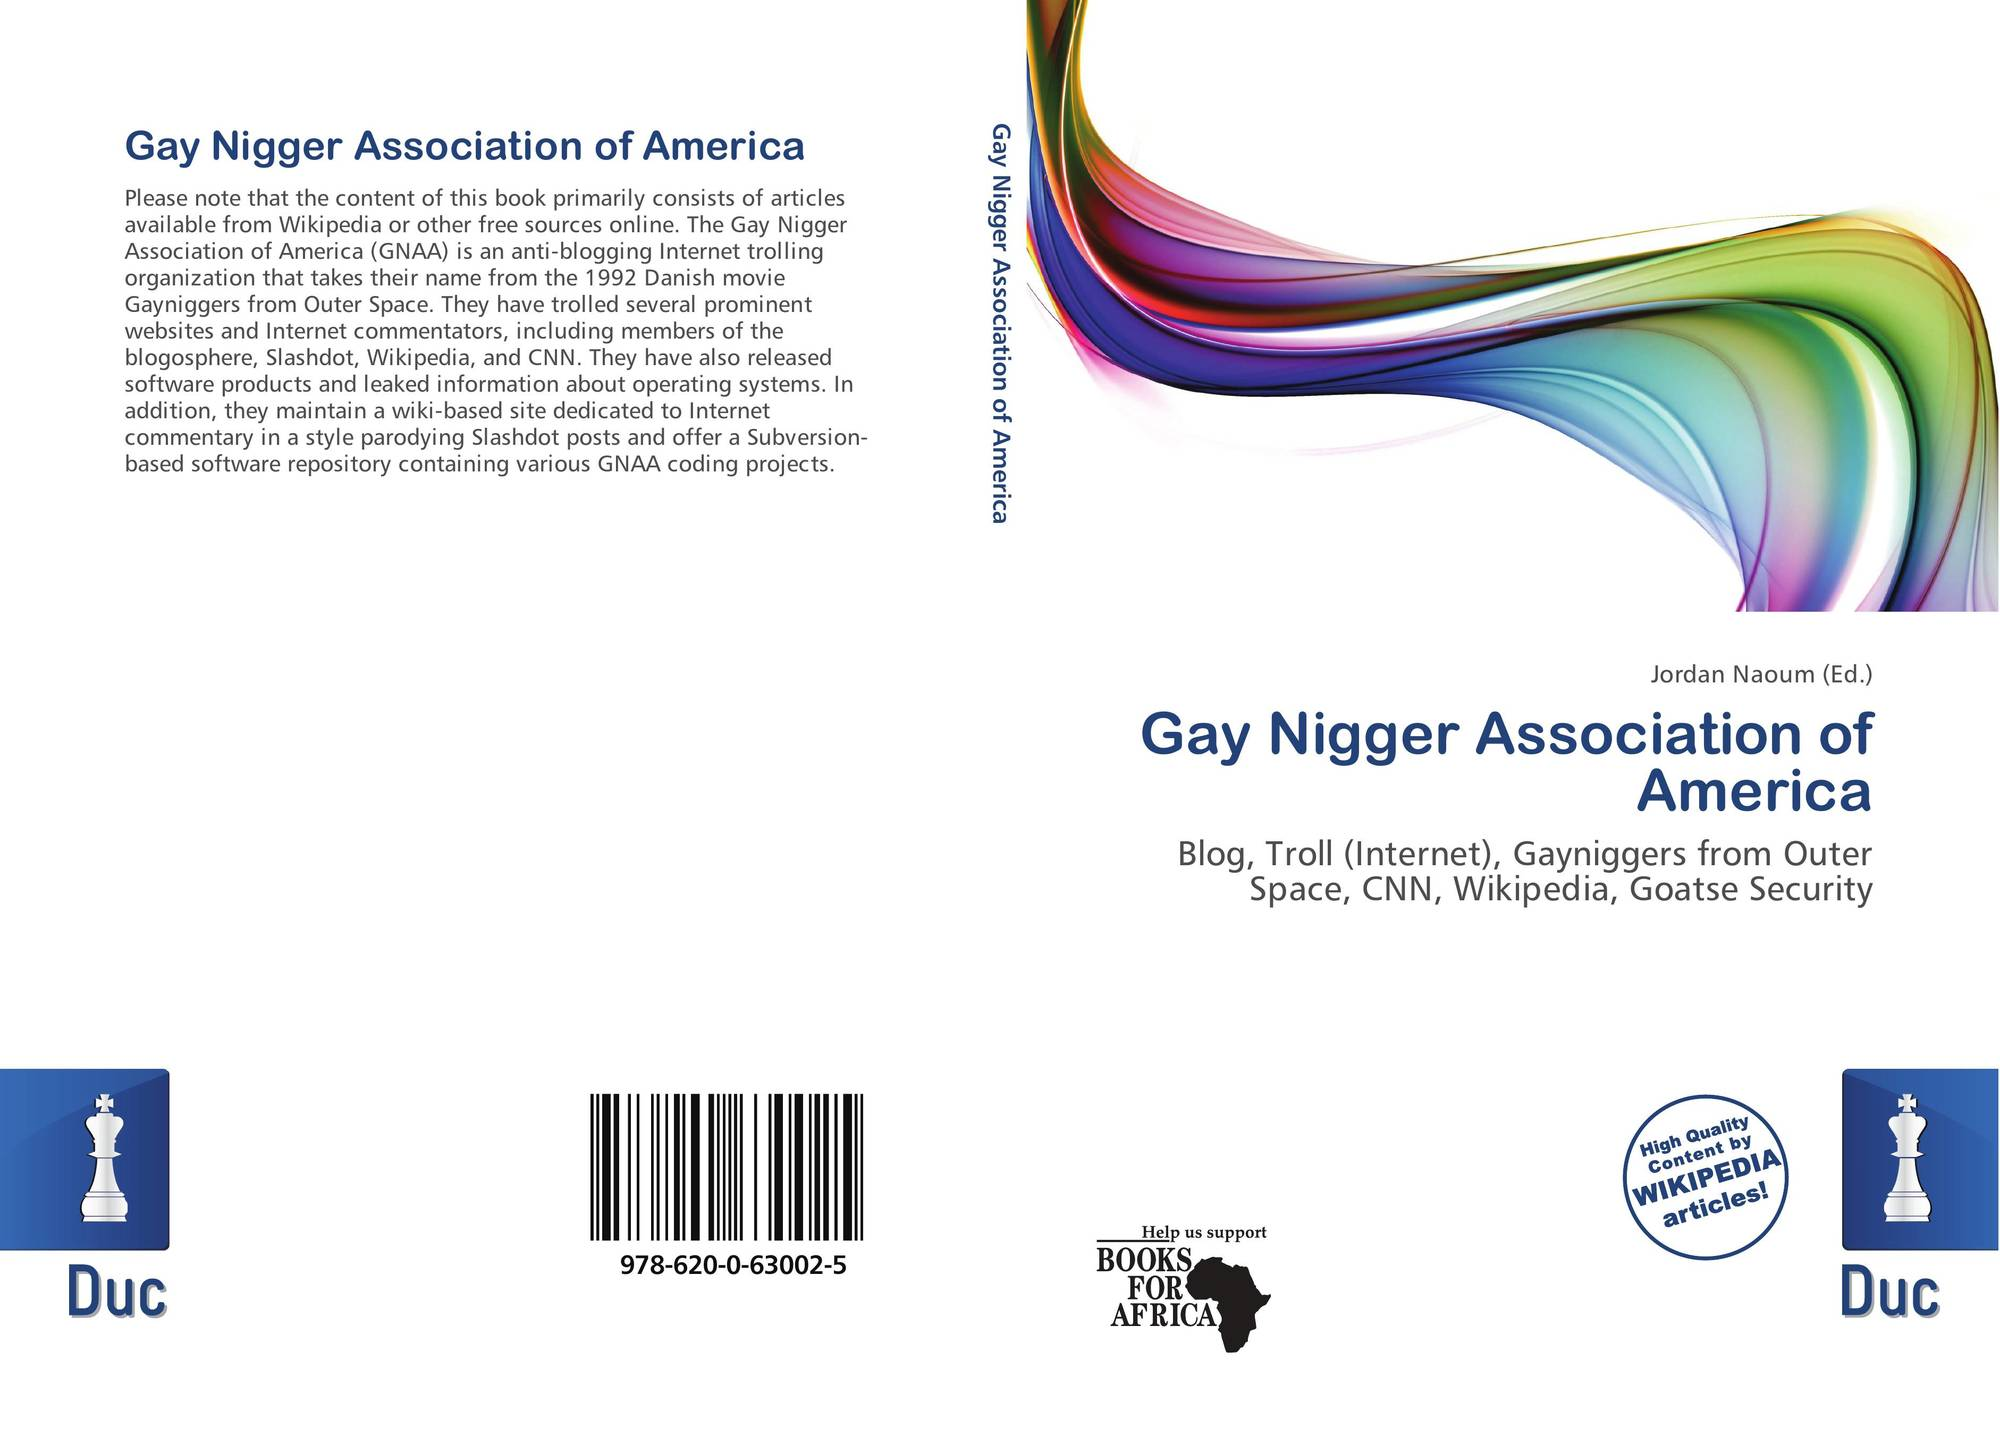 Boy gets gay niggers association of america orgy pics